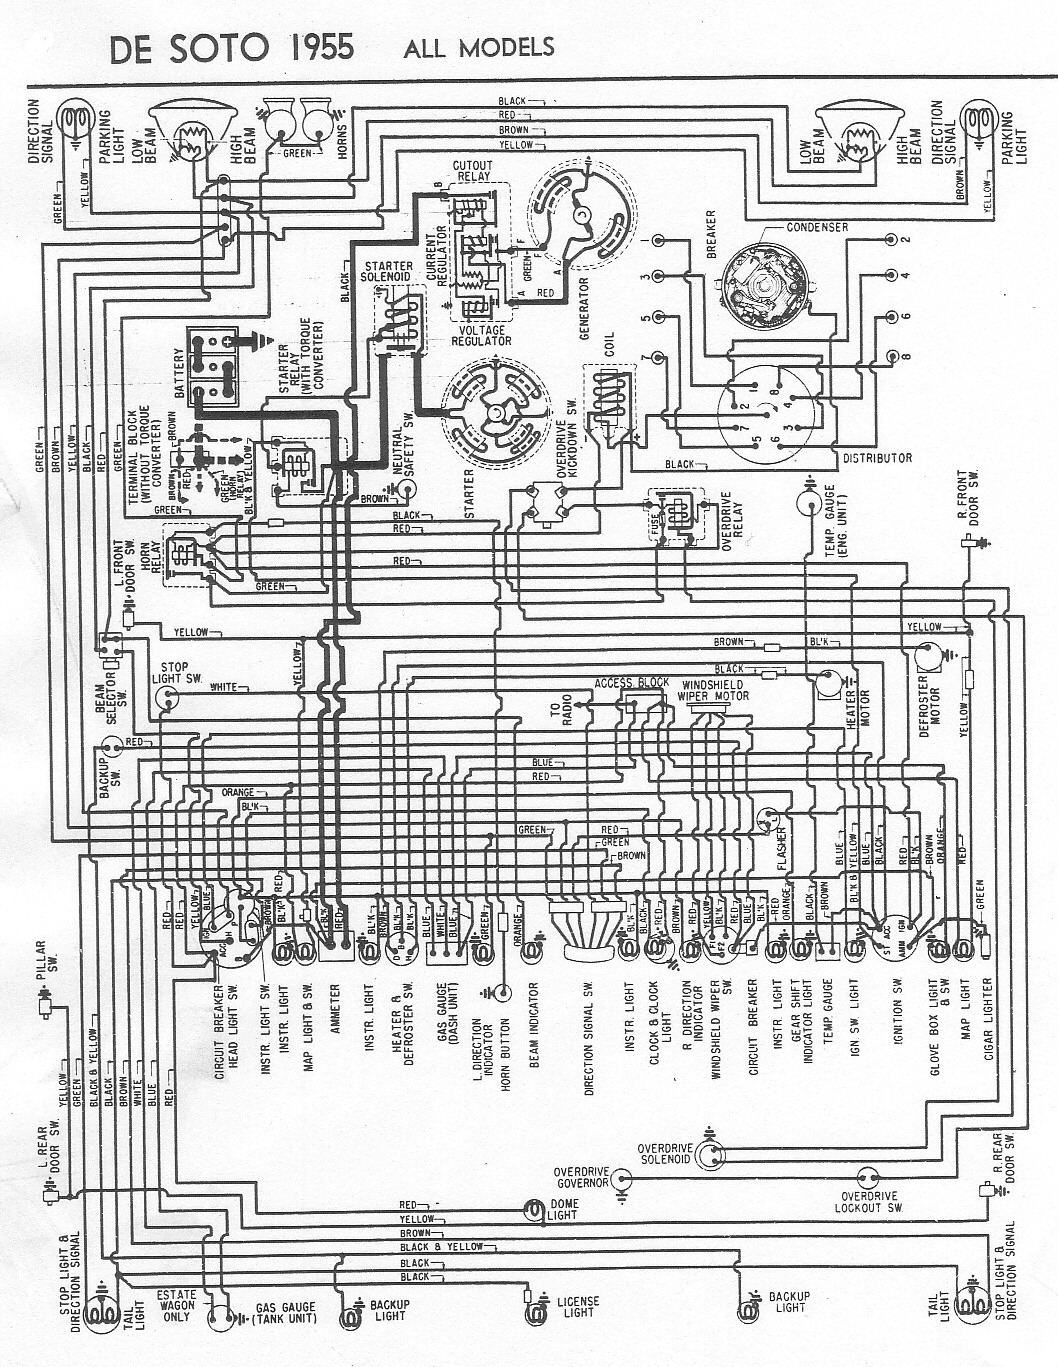 first let me confirm that this diagram for a 1955 is similar to your 1950 ?